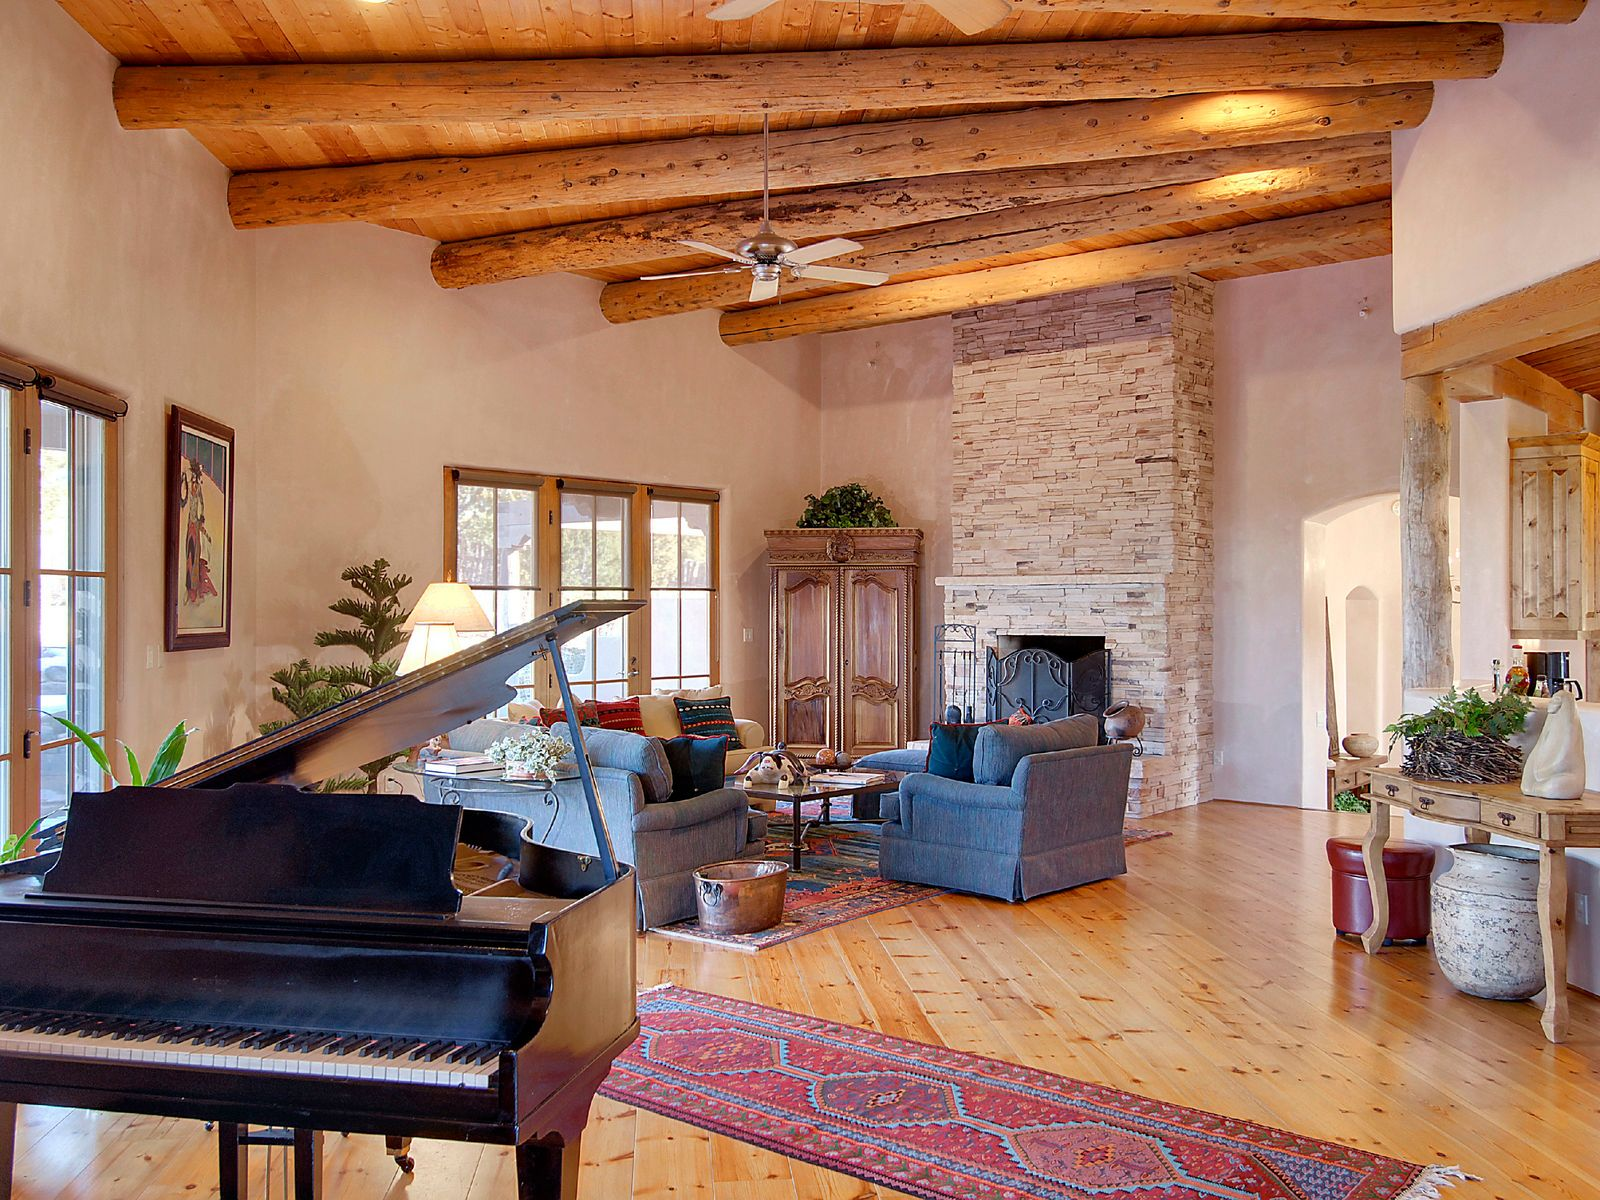 6 Vista De La Vida, Santa Fe NM Single Family Home - Santa Fe Real Estate